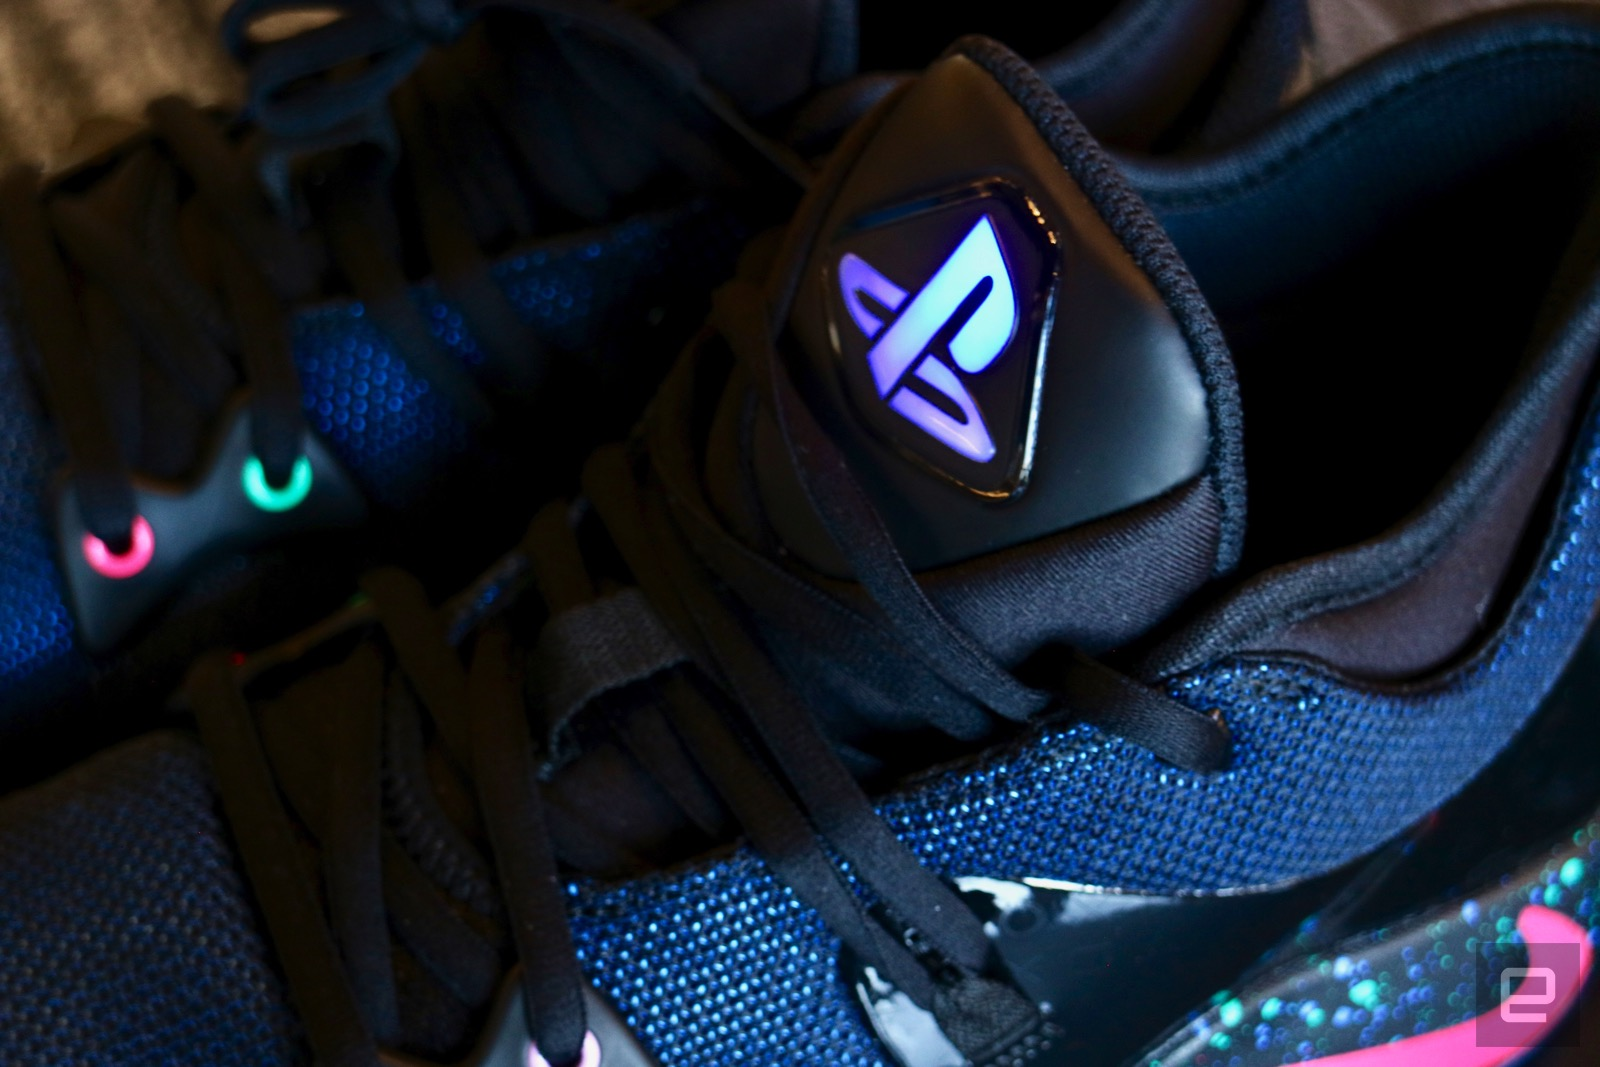 new product c1b9e a78d9 Nike's 'PlayStation' shoes make hypebeasts out of gamers